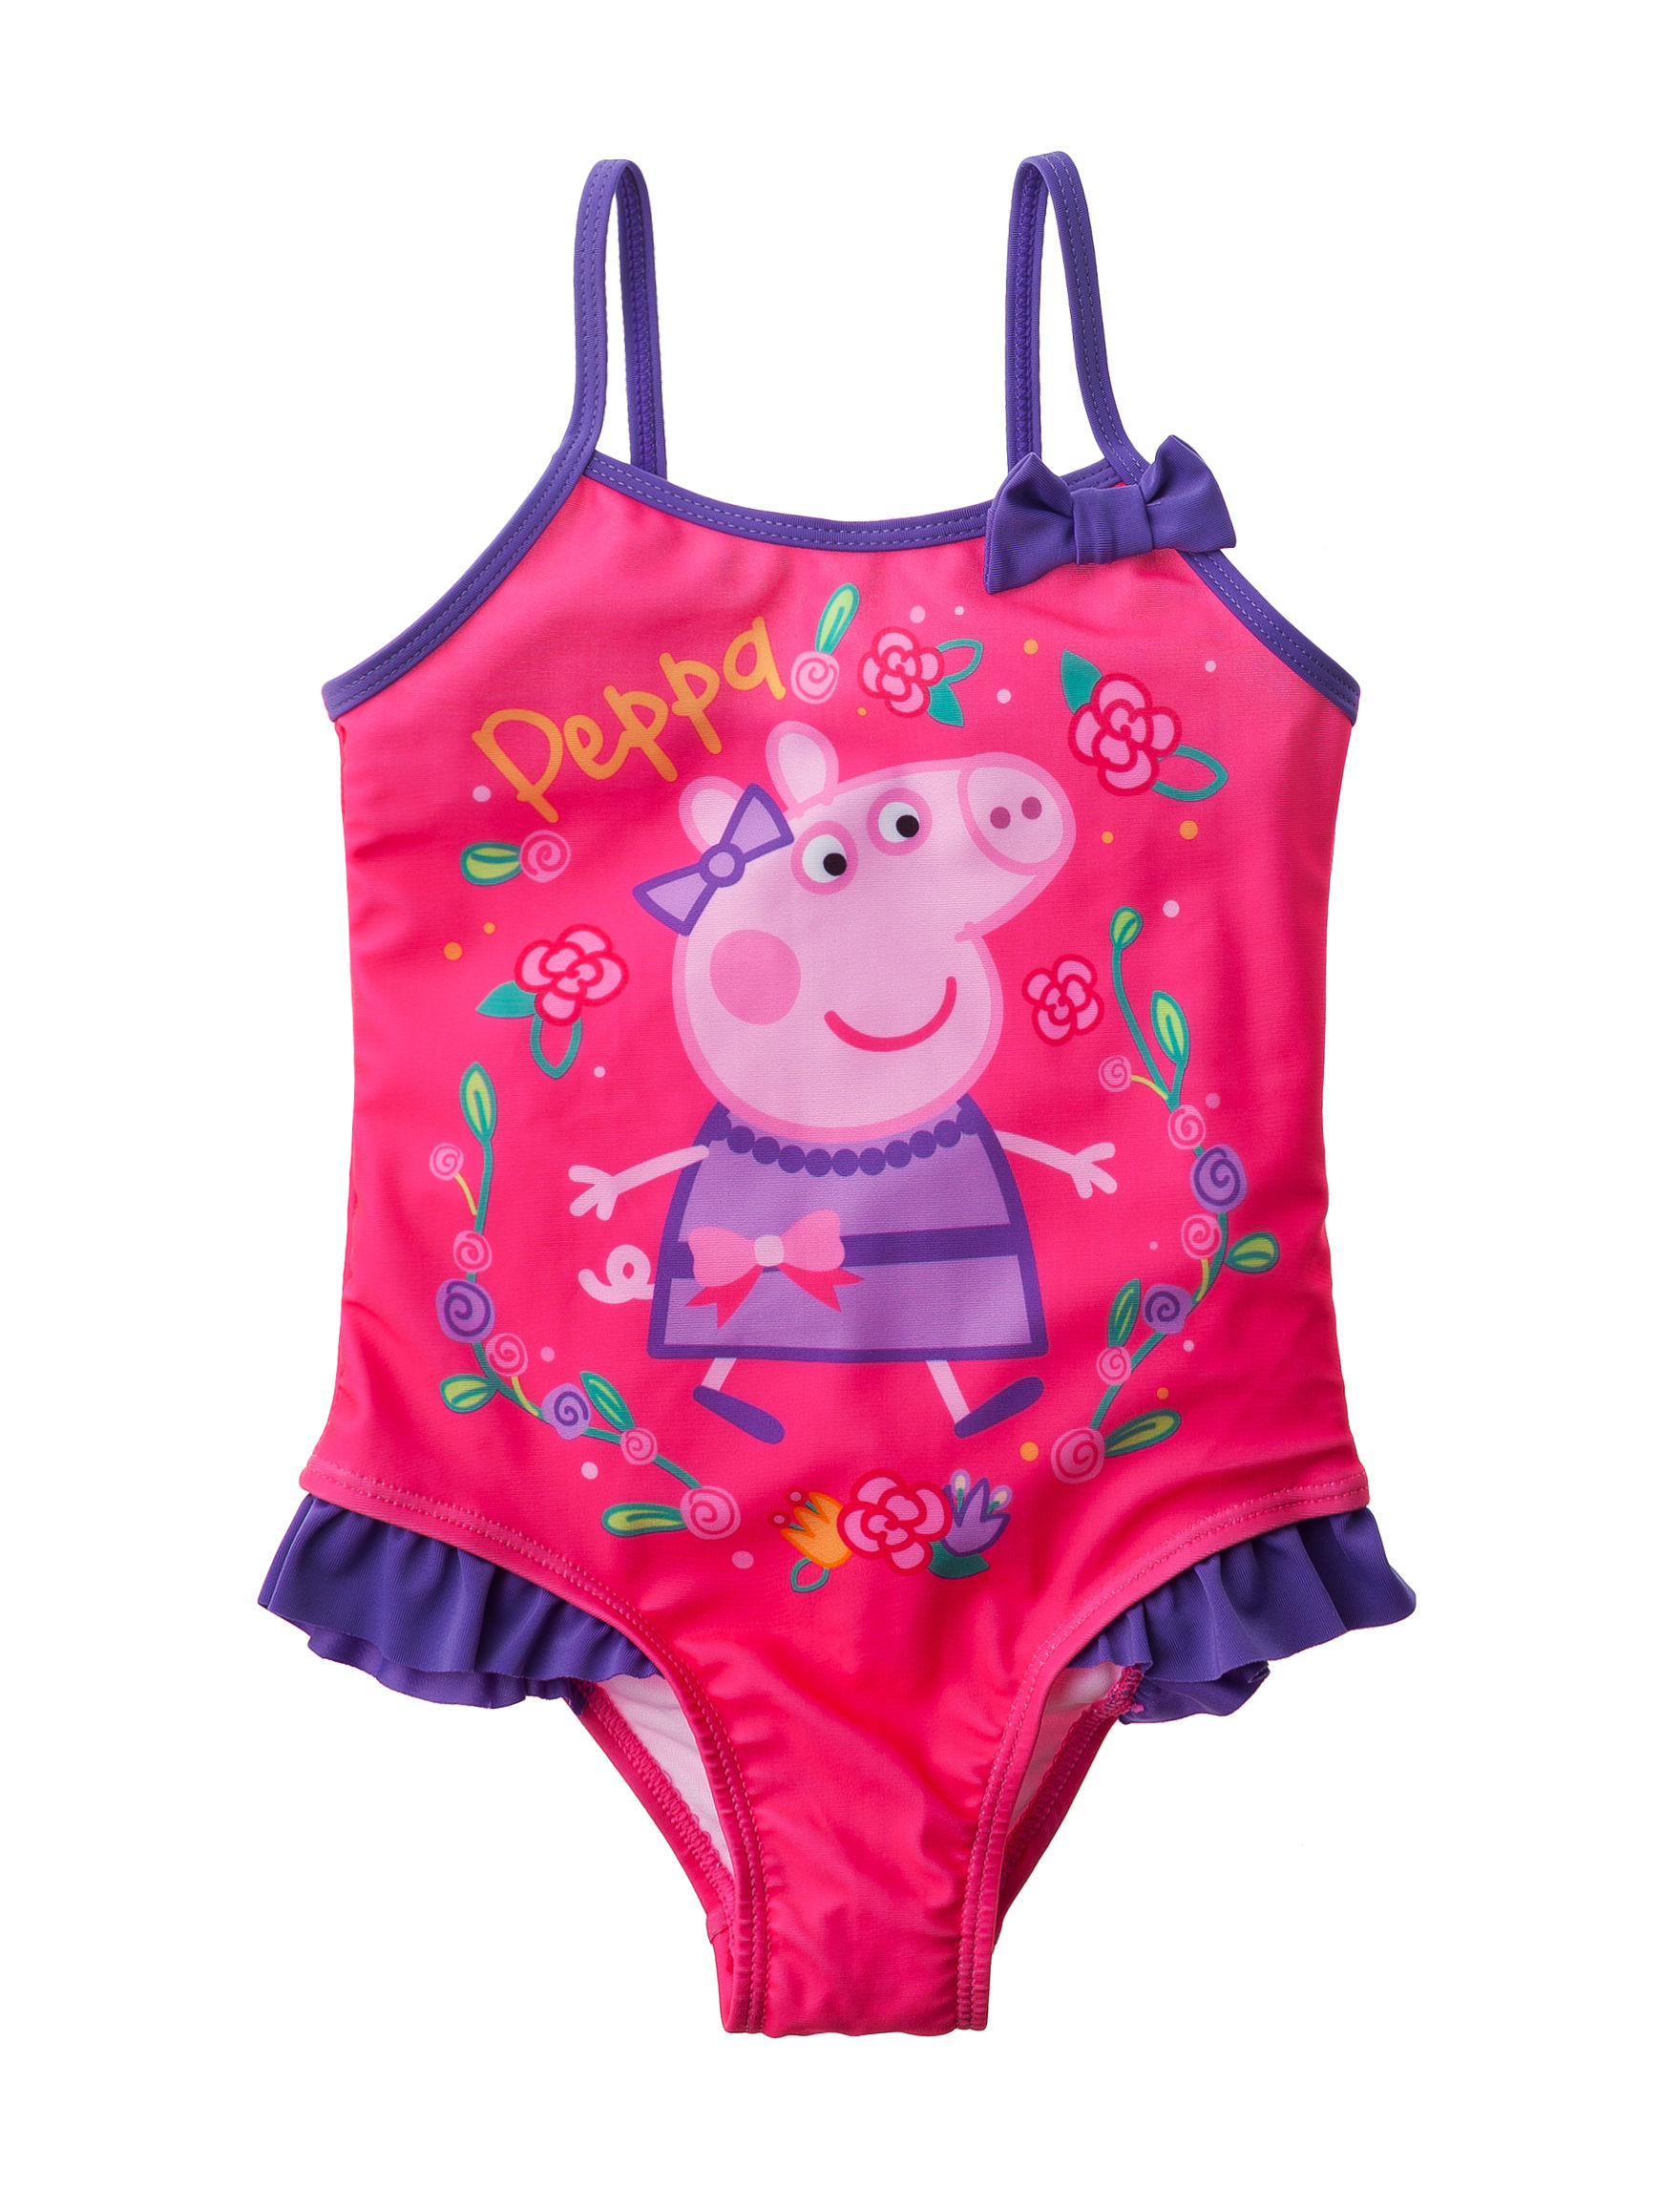 Licensed Pink One-piece Swimsuits